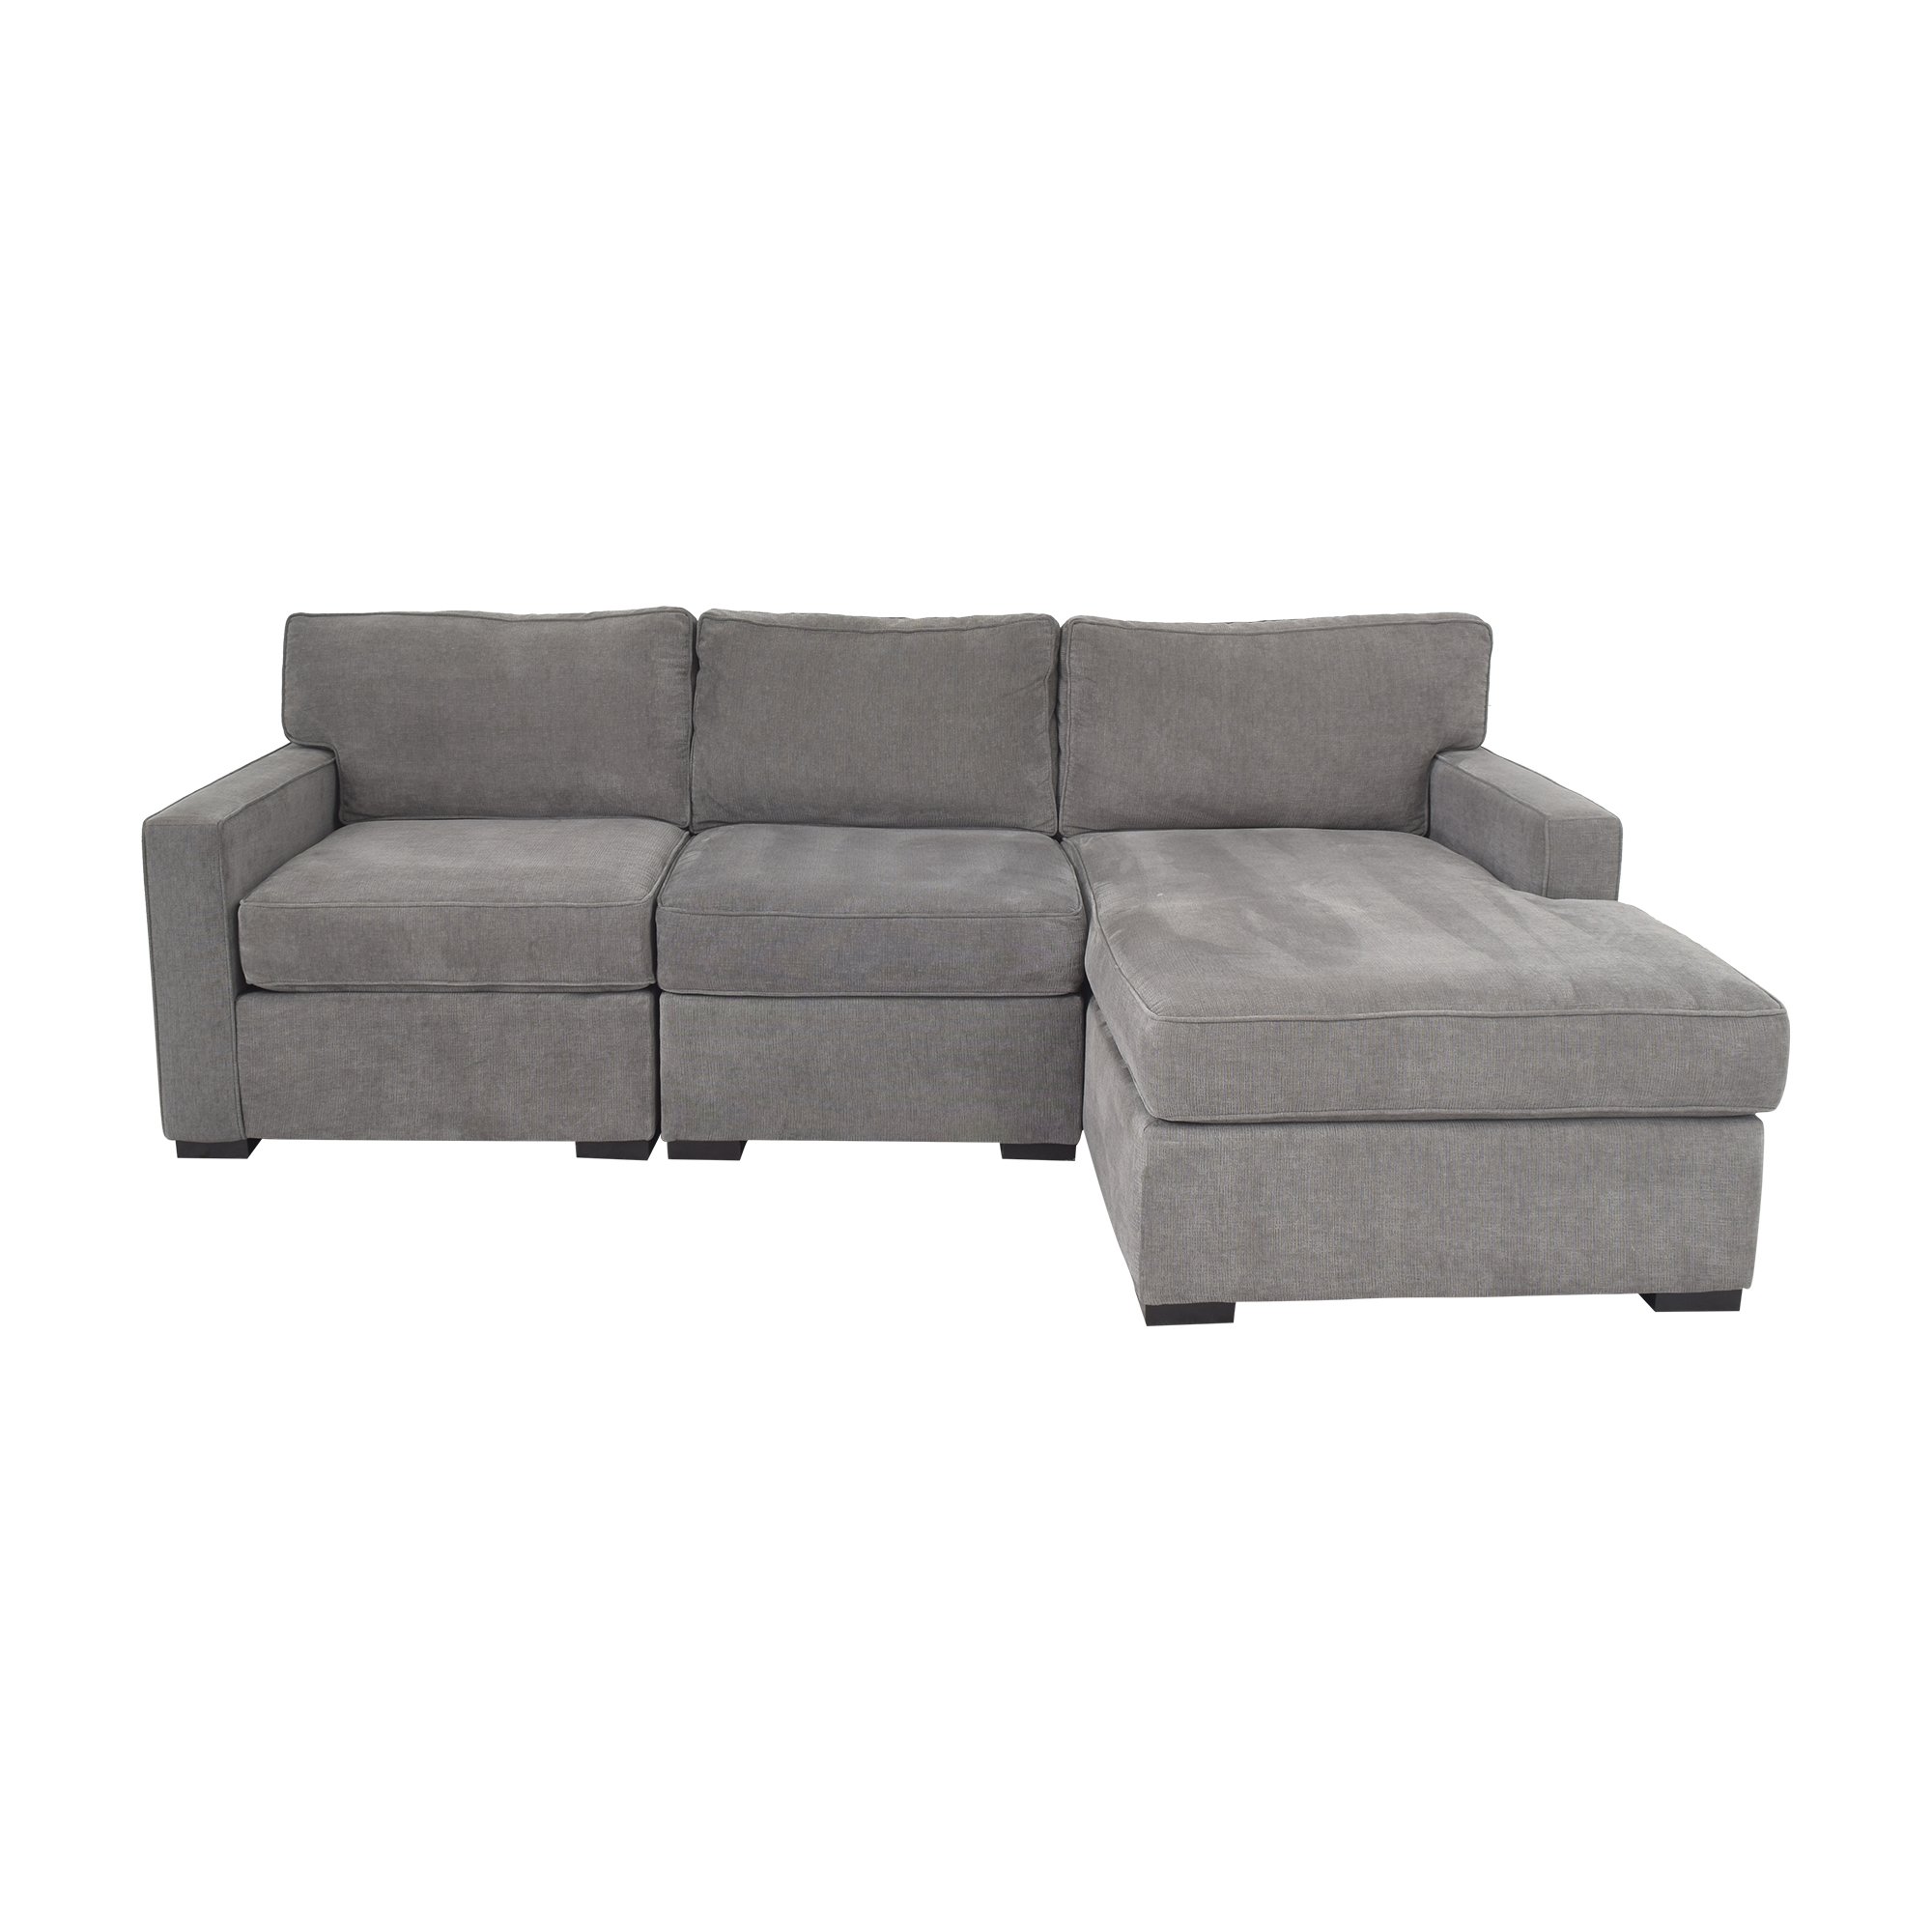 Macy's Macy's Radley Three Piece Chaise Sectional Sofa nj